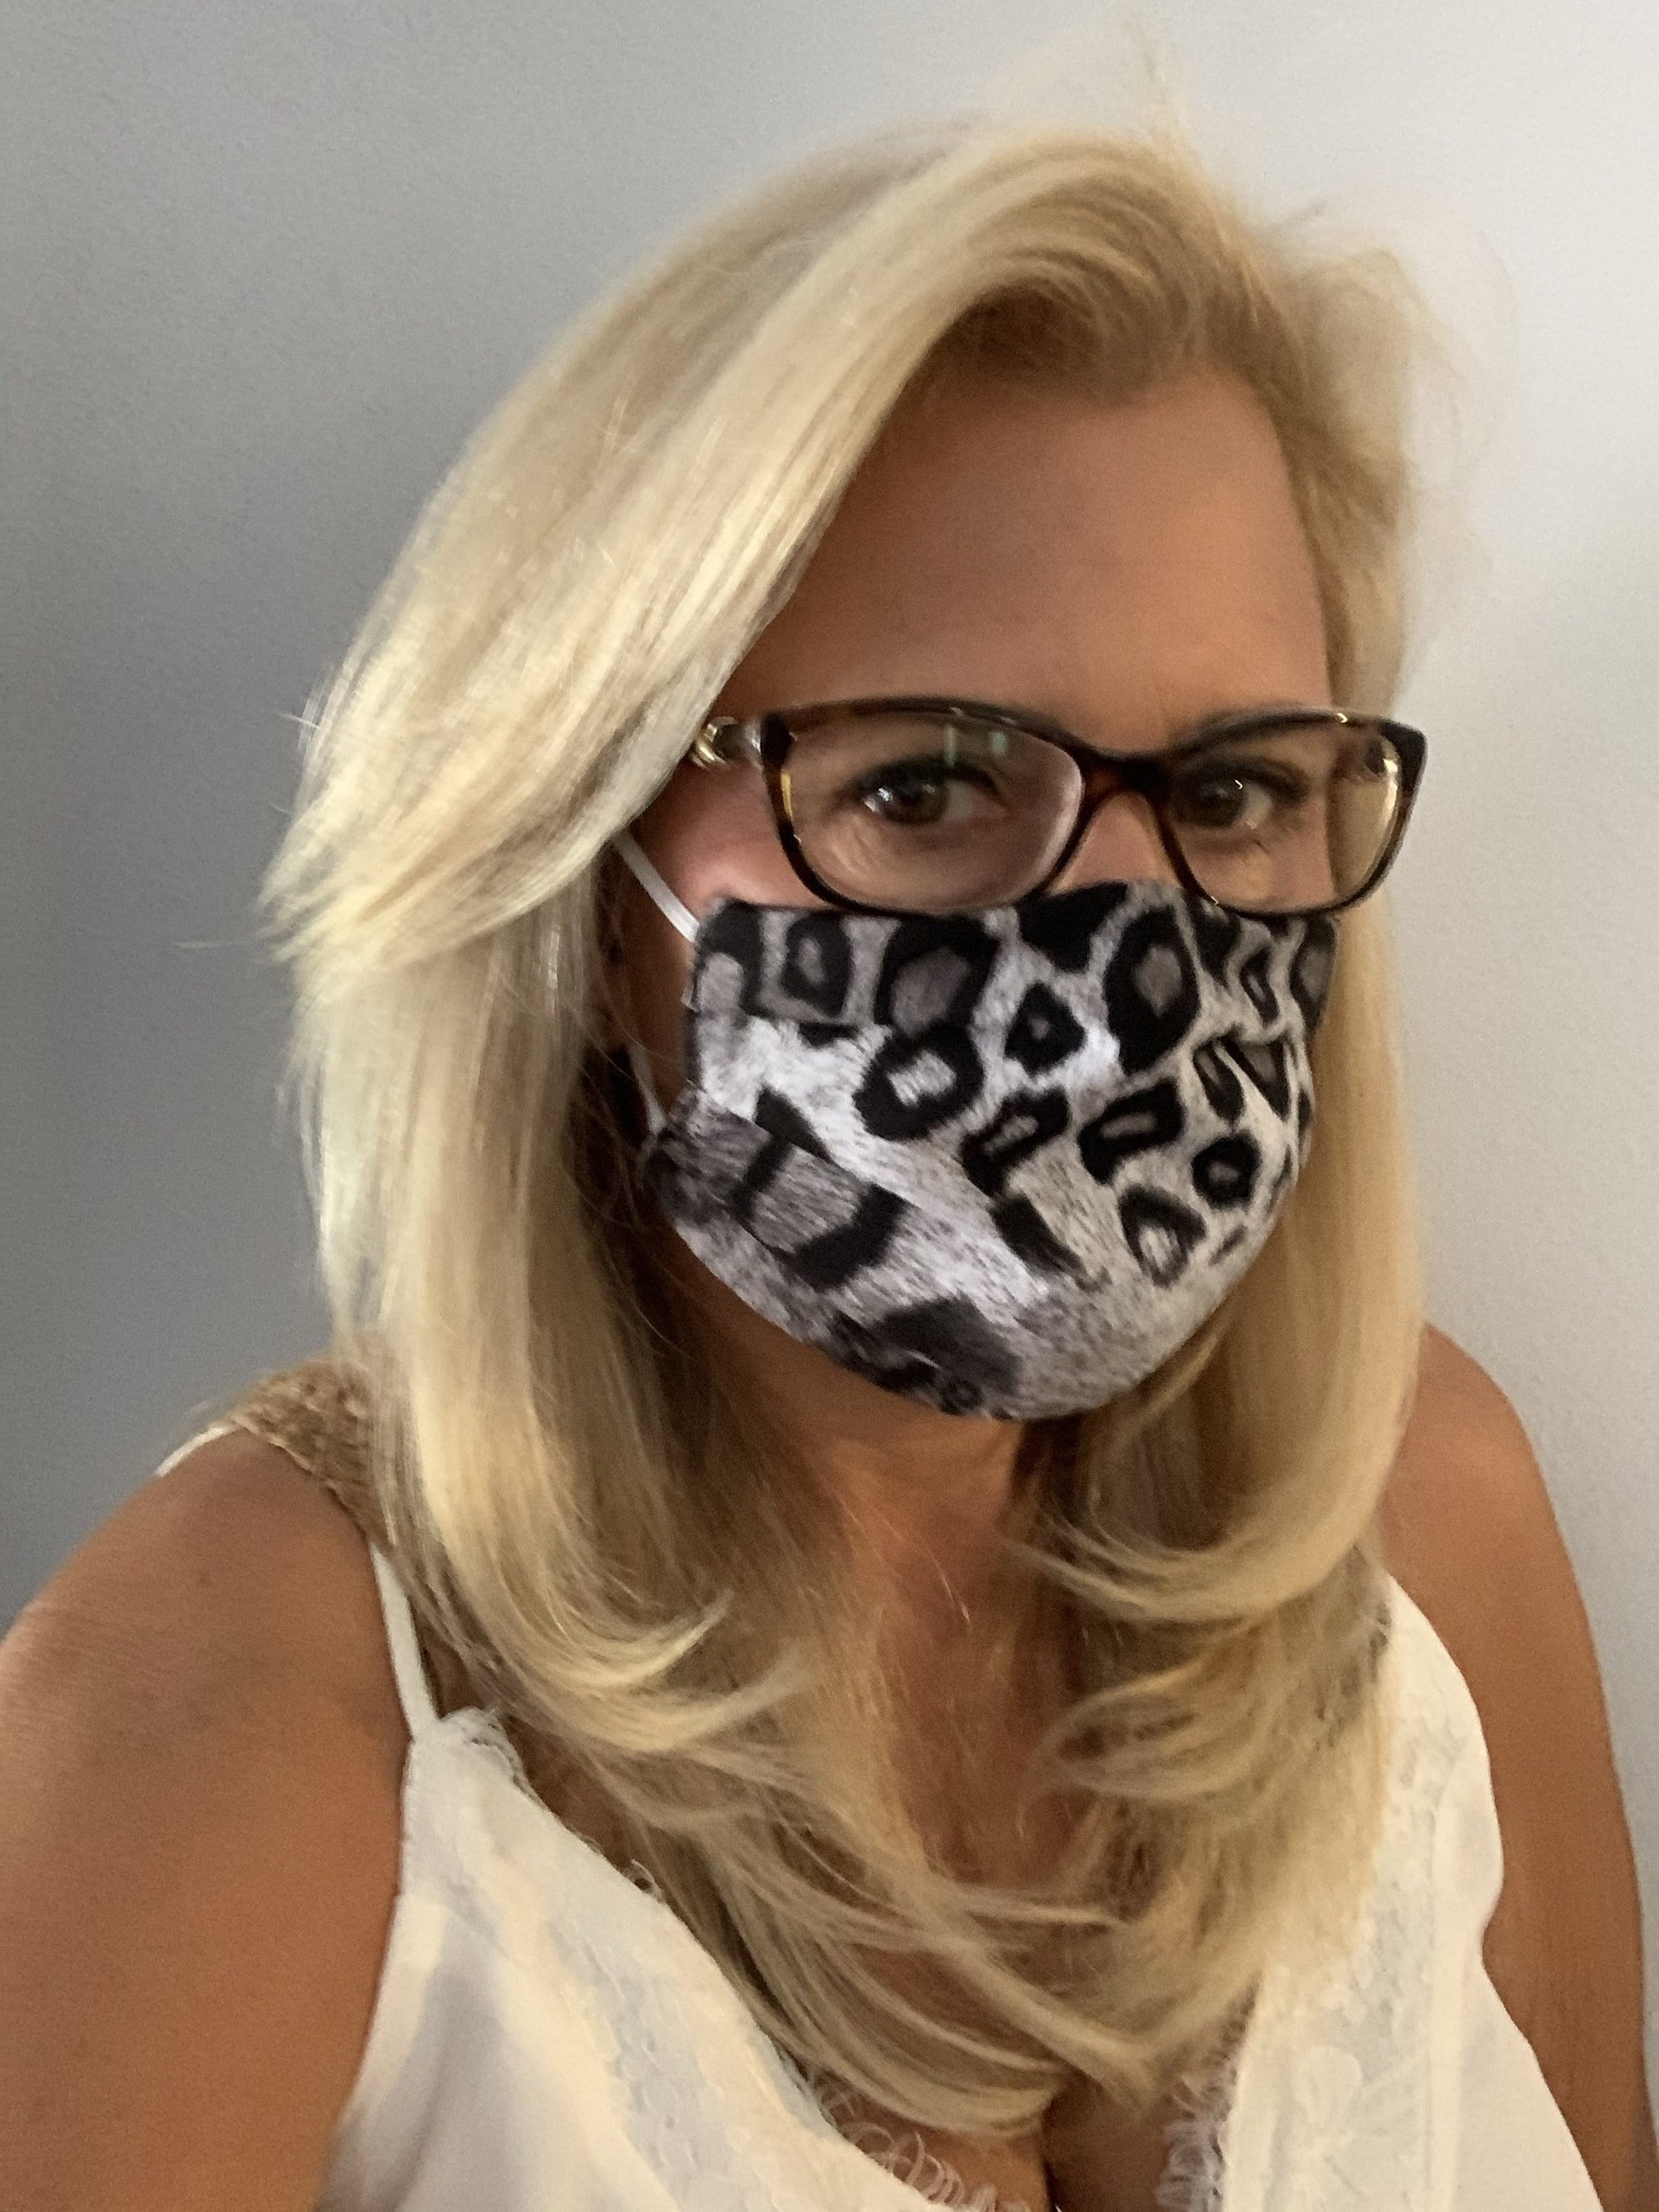 Stacy Bradley Design Face Mask Gray Leopard equestrian team apparel online tack store mobile tack store custom farm apparel custom show stable clothing equestrian lifestyle horse show clothing riding clothes horses equestrian tack store